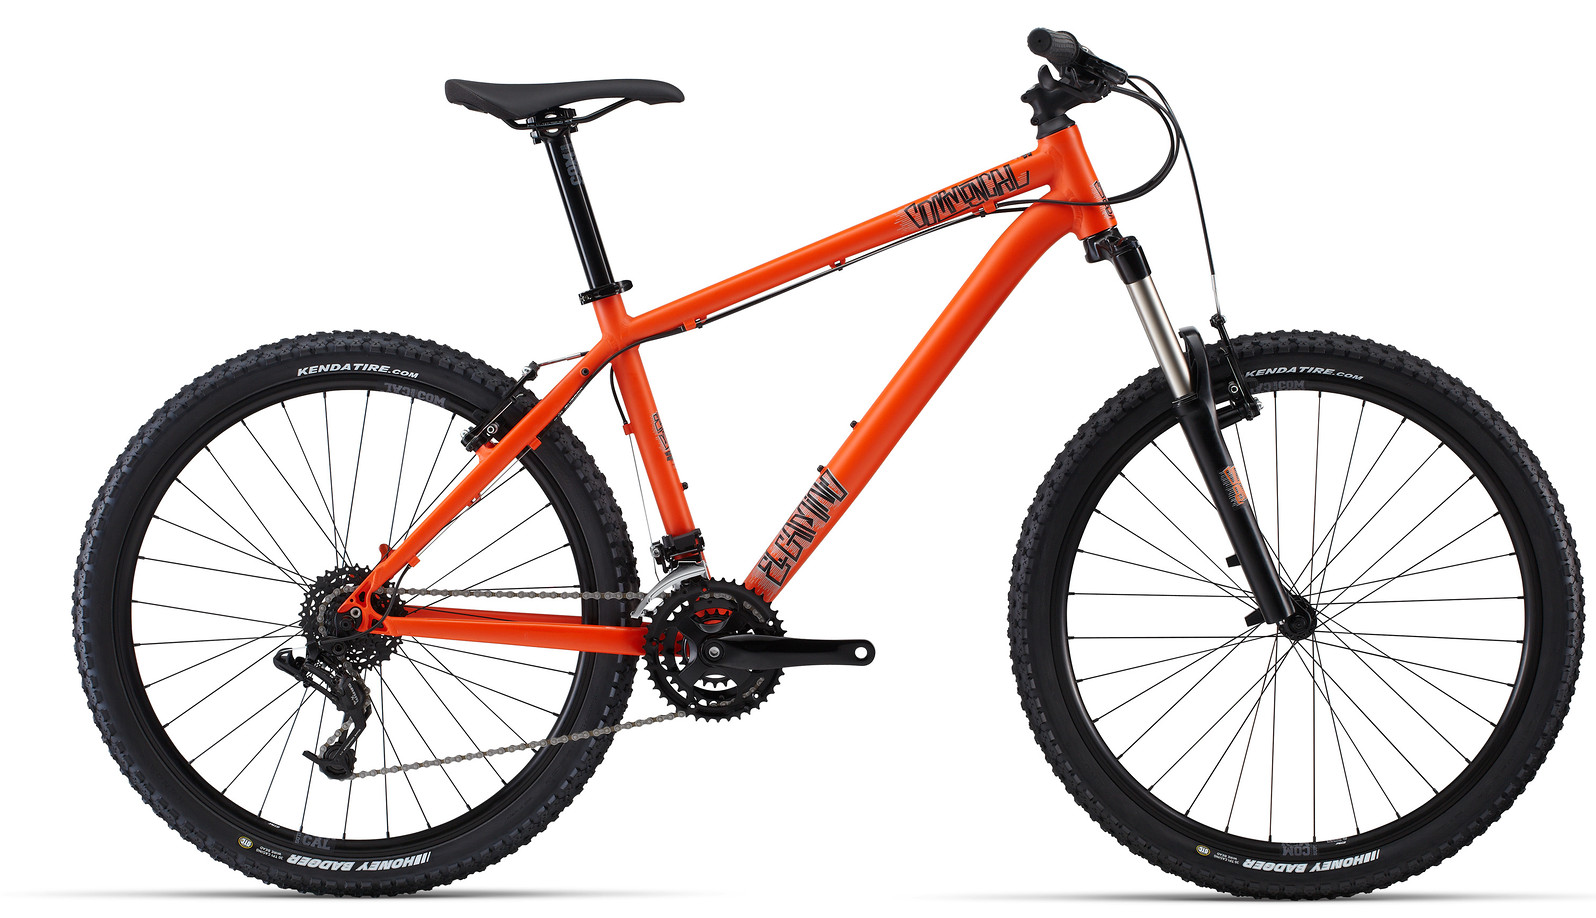 2014 Commencal Camino VB Bike 14CAMINOVB